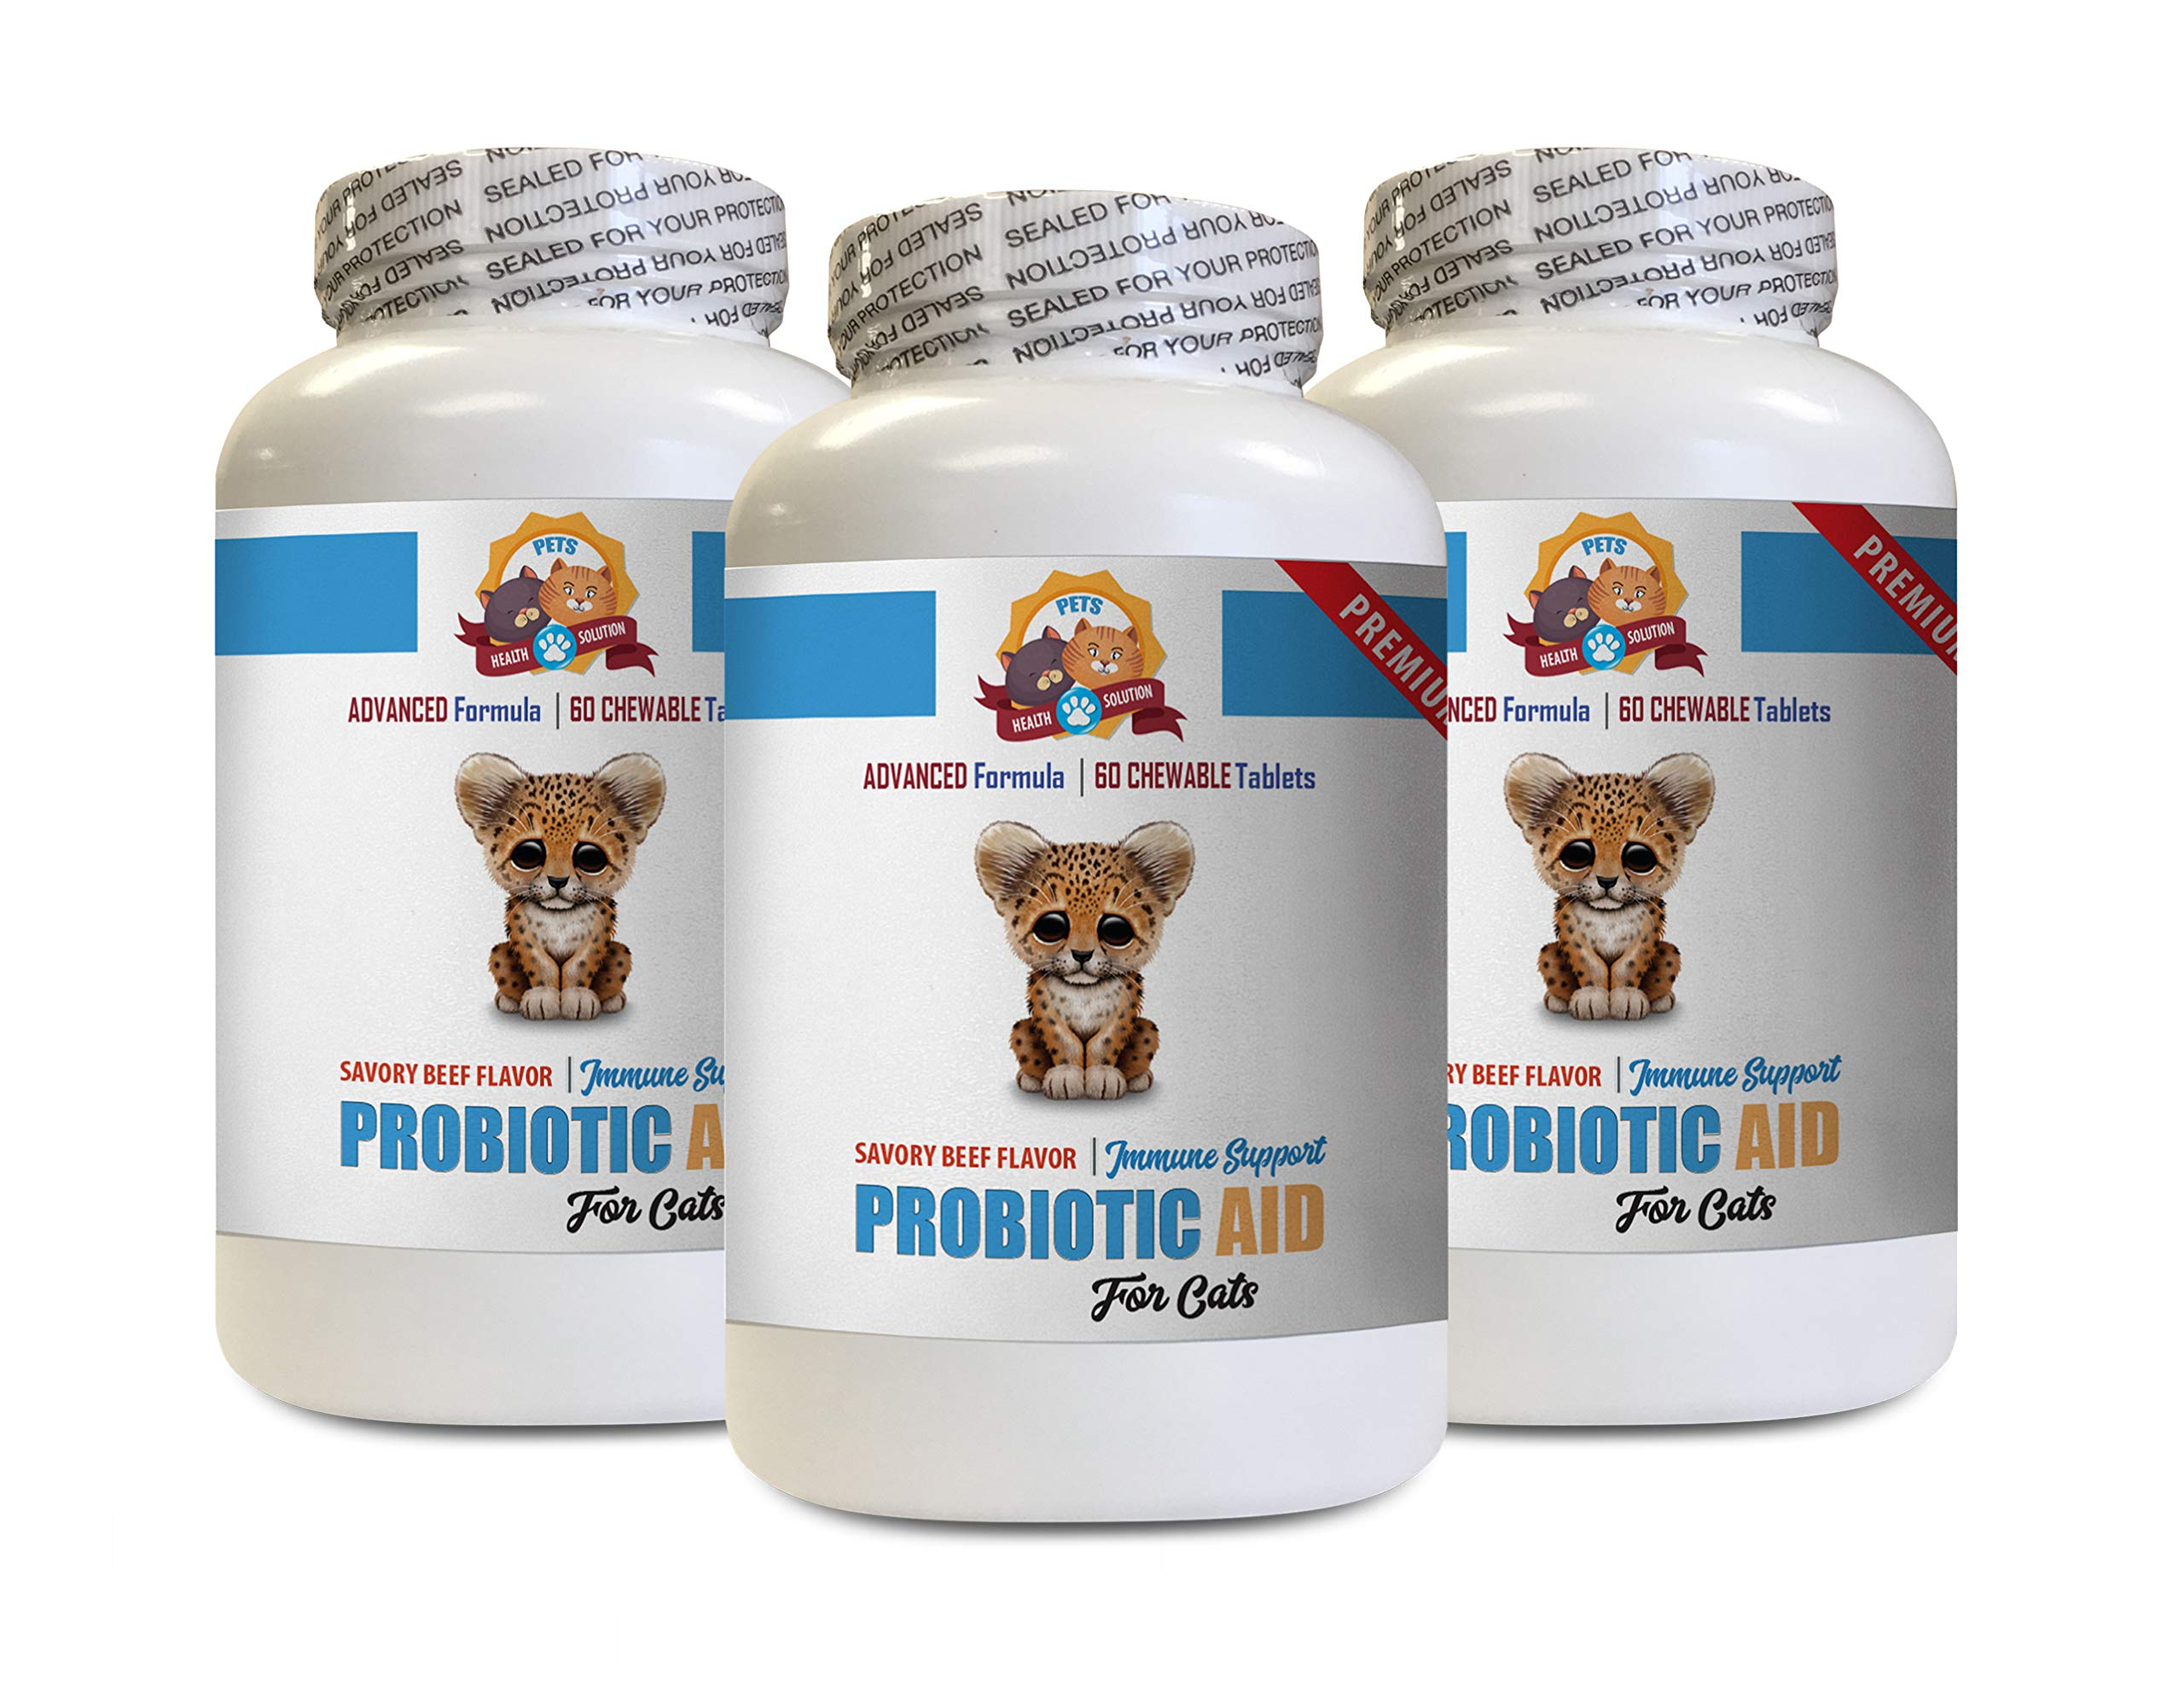 PETS HEALTH SOLUTION cat Digestive enzymes with probiotics - CAT PROBIOTIC AID - Premium Formula - Natural Digestive Helper - cat Digestive enzymes with probiotics - 3 Bottles (180 Treats) by PETS HEALTH SOLUTION